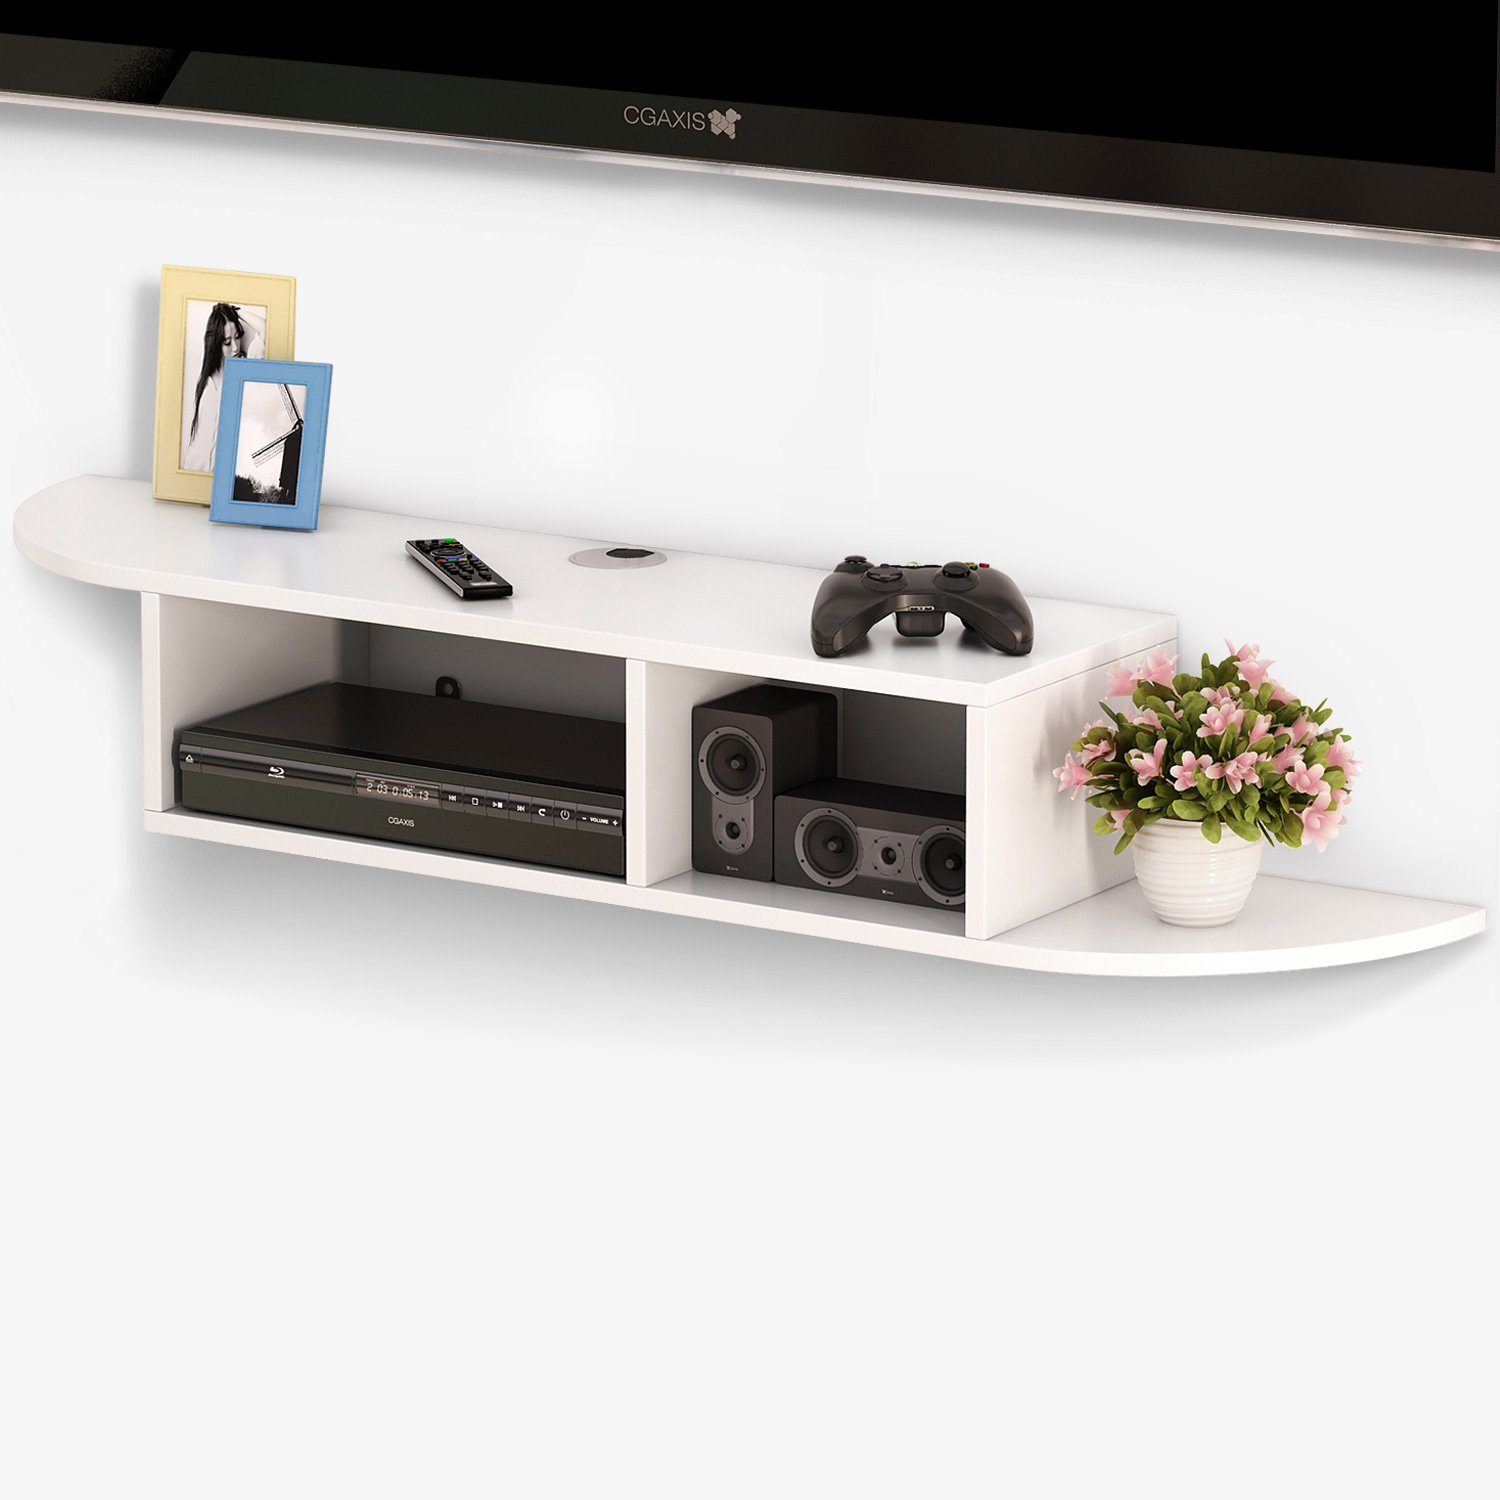 Tribesigns 2 Tier Modern Wall Mount Floating Shelf TV Console 43.3x9.4x7 inch for Cable Boxes/Routers/ Remotes/DVD Players/Game Consoles (White)